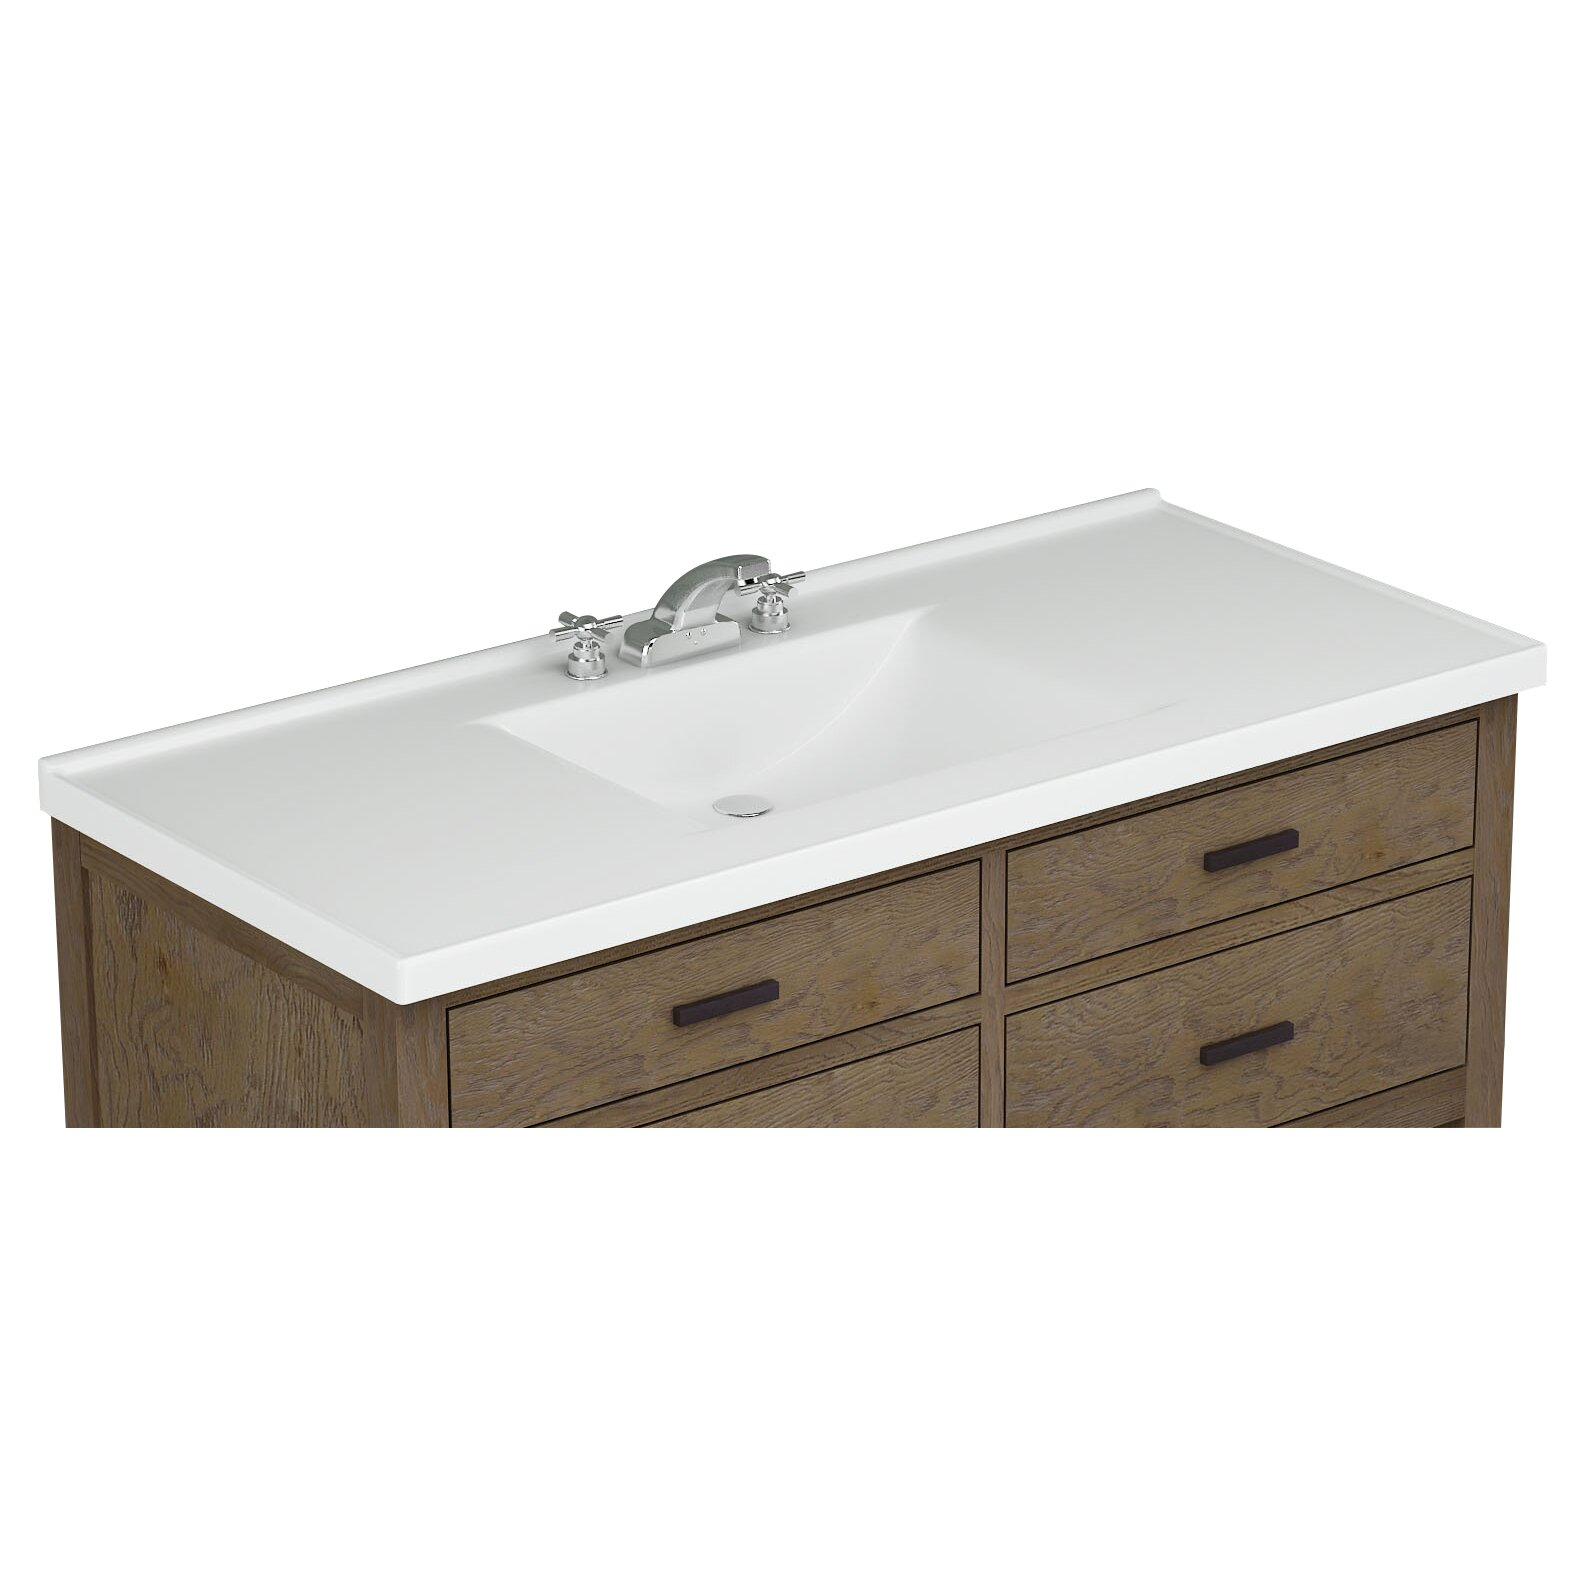 sunny wood premier tops 49 bathroom vanity top with integrated basin